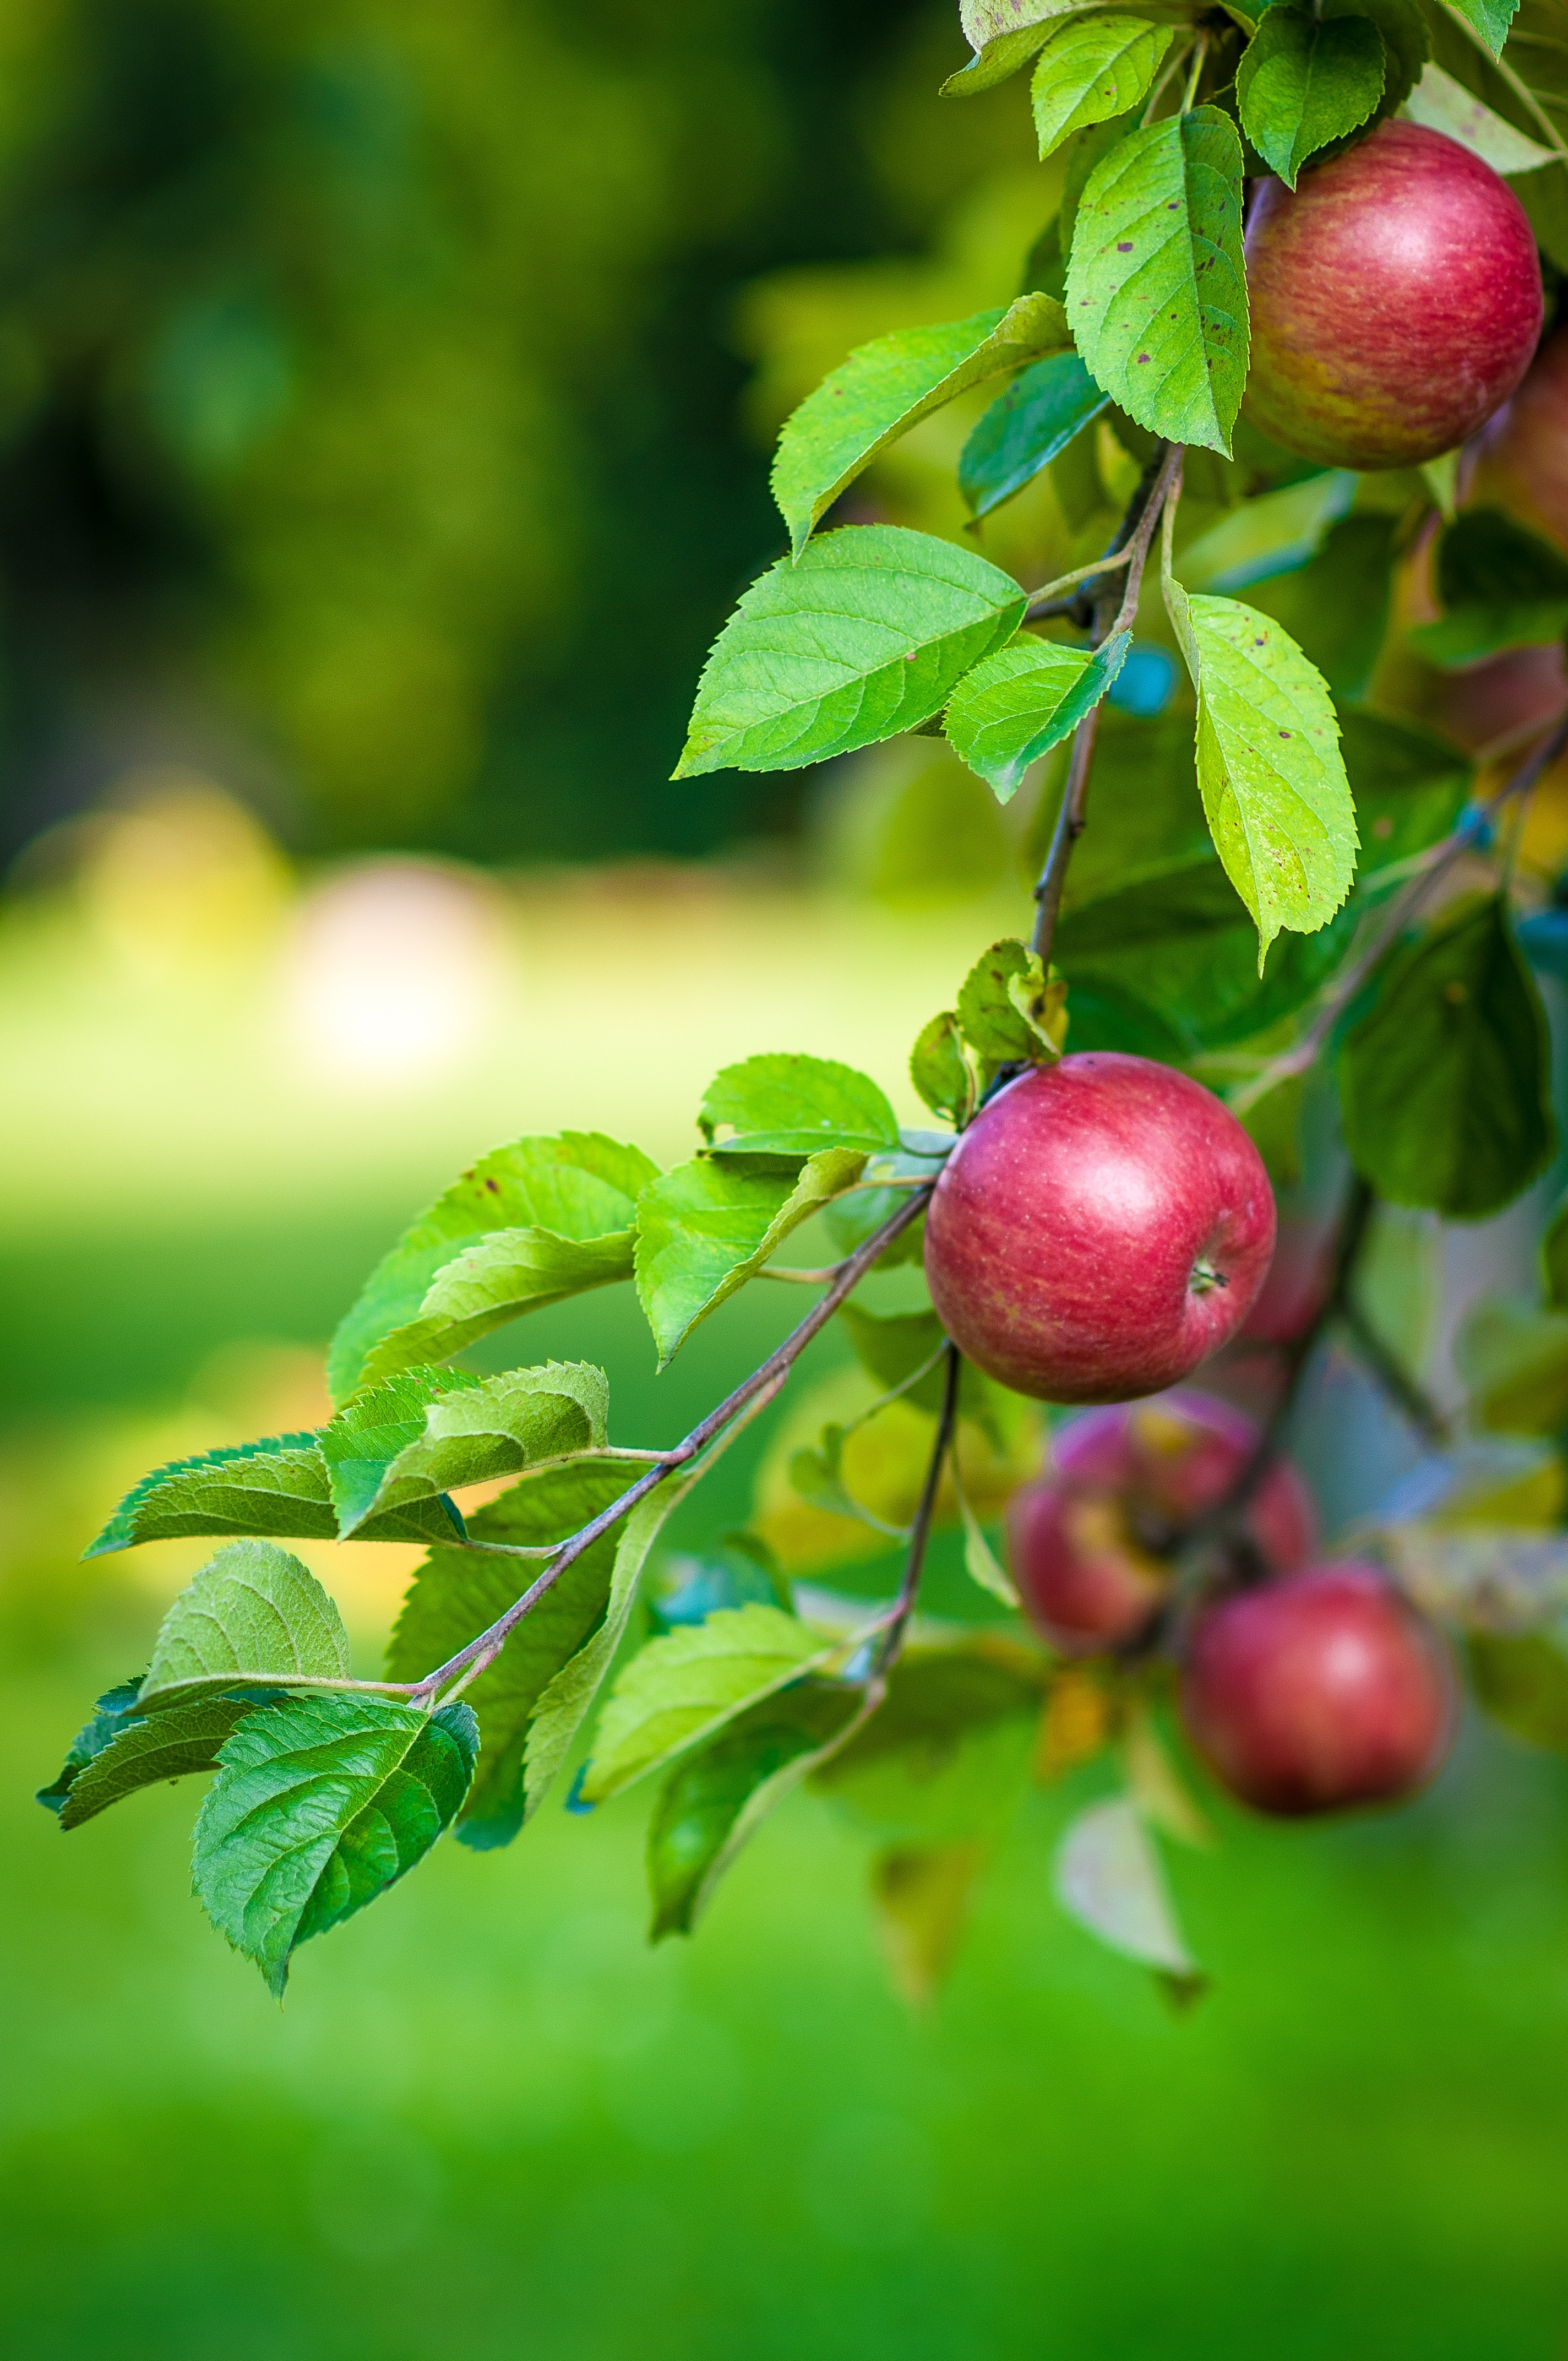 Green Leaves And Red Apple Fruit Free Stock Photo